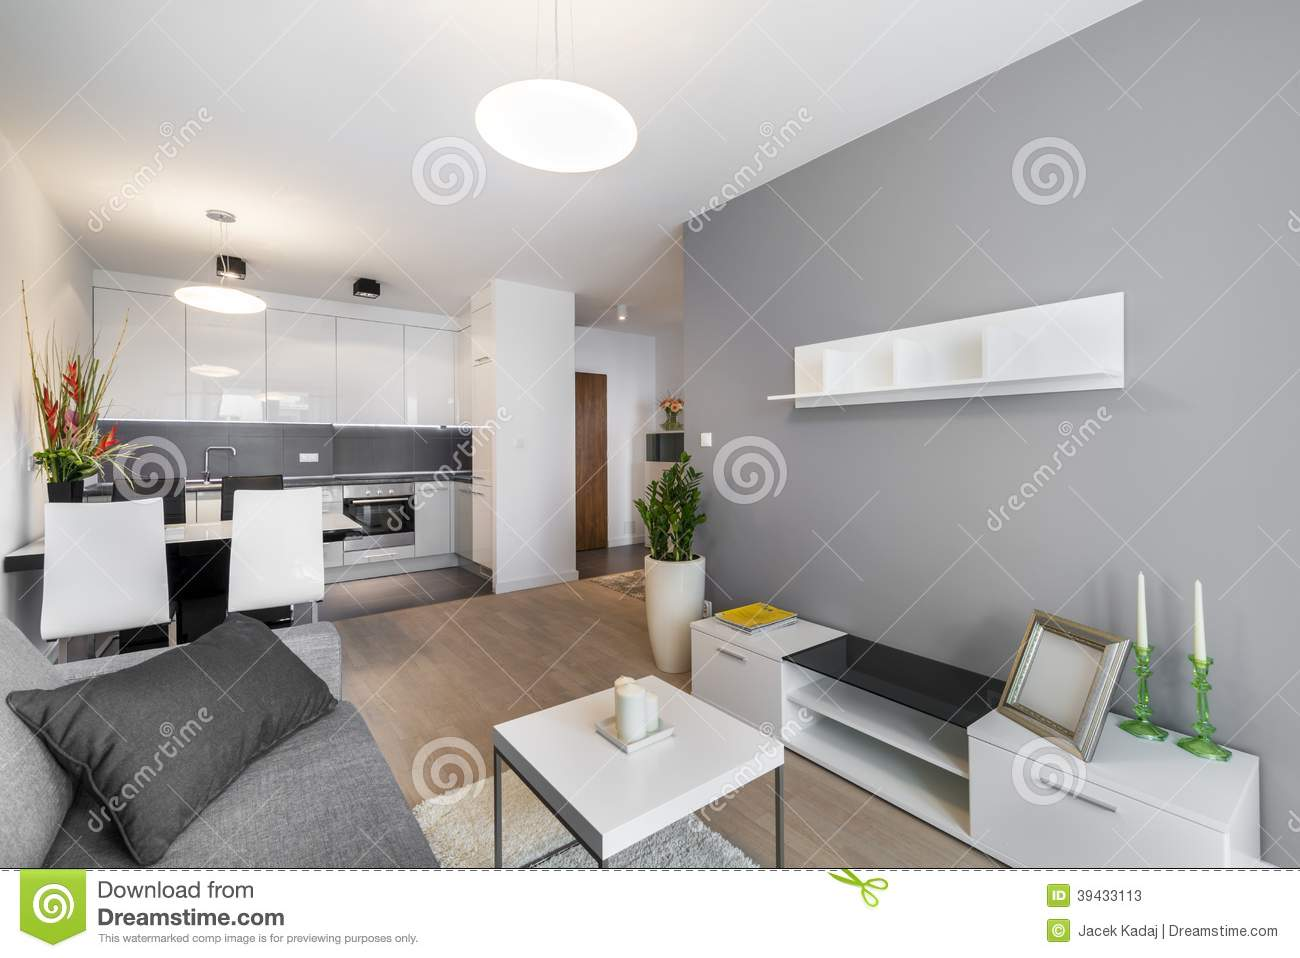 Modern Interior Design Living Room Stock Image - Image of ...